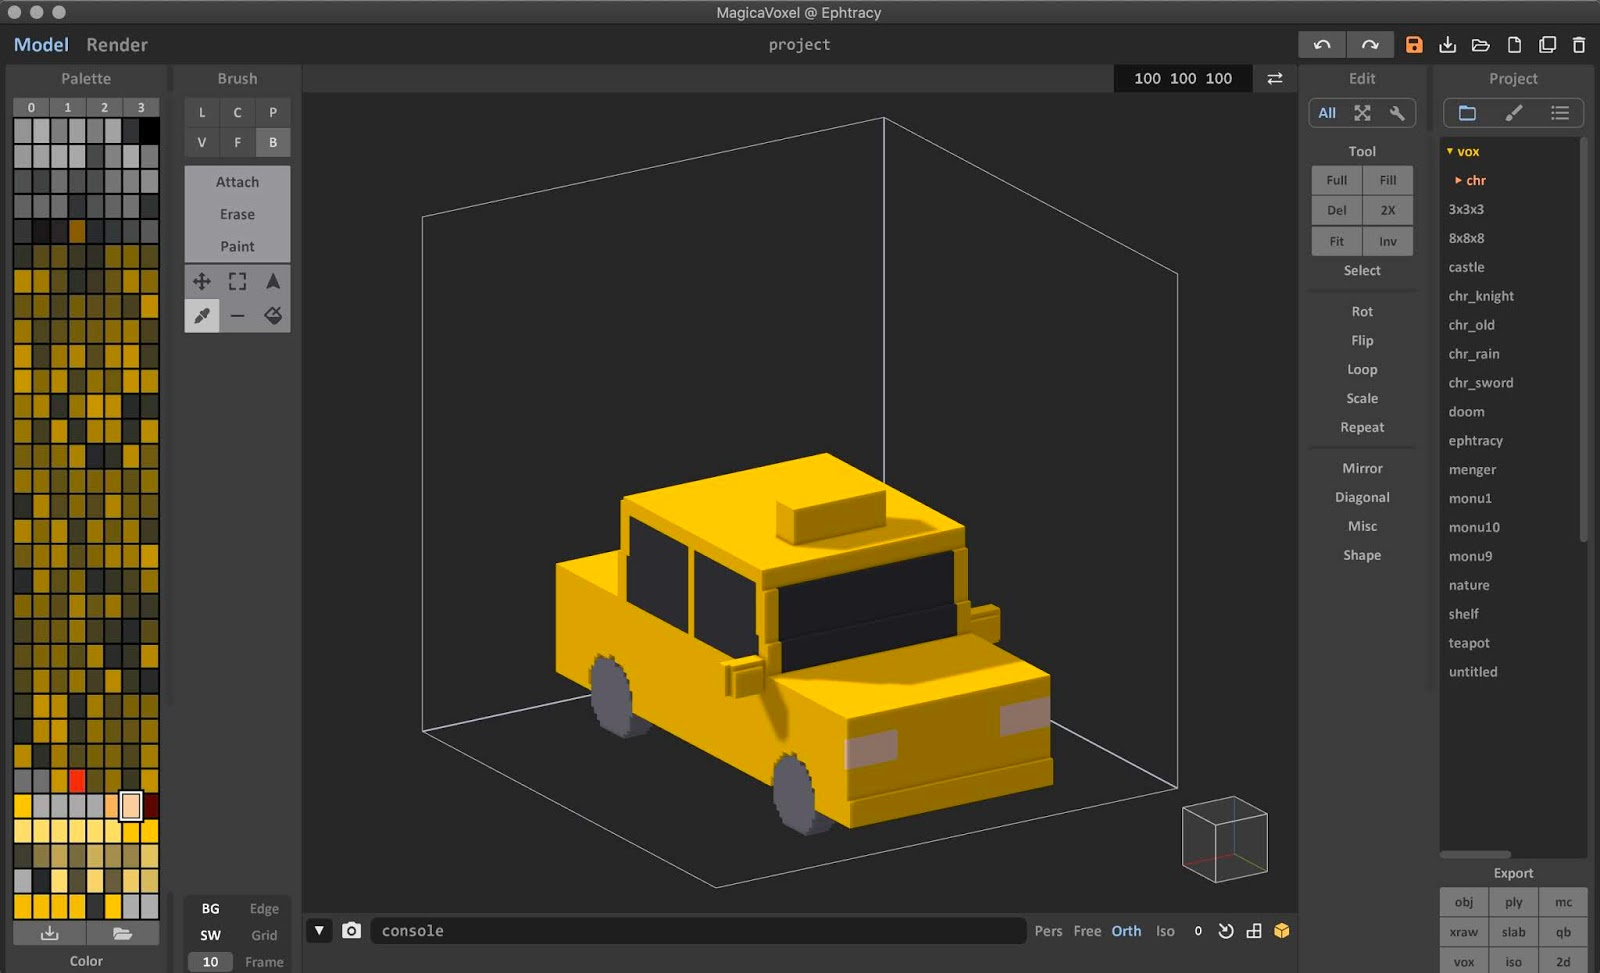 Tutorial - How to Convert 3D Models into Voxels using MagicaVoxel